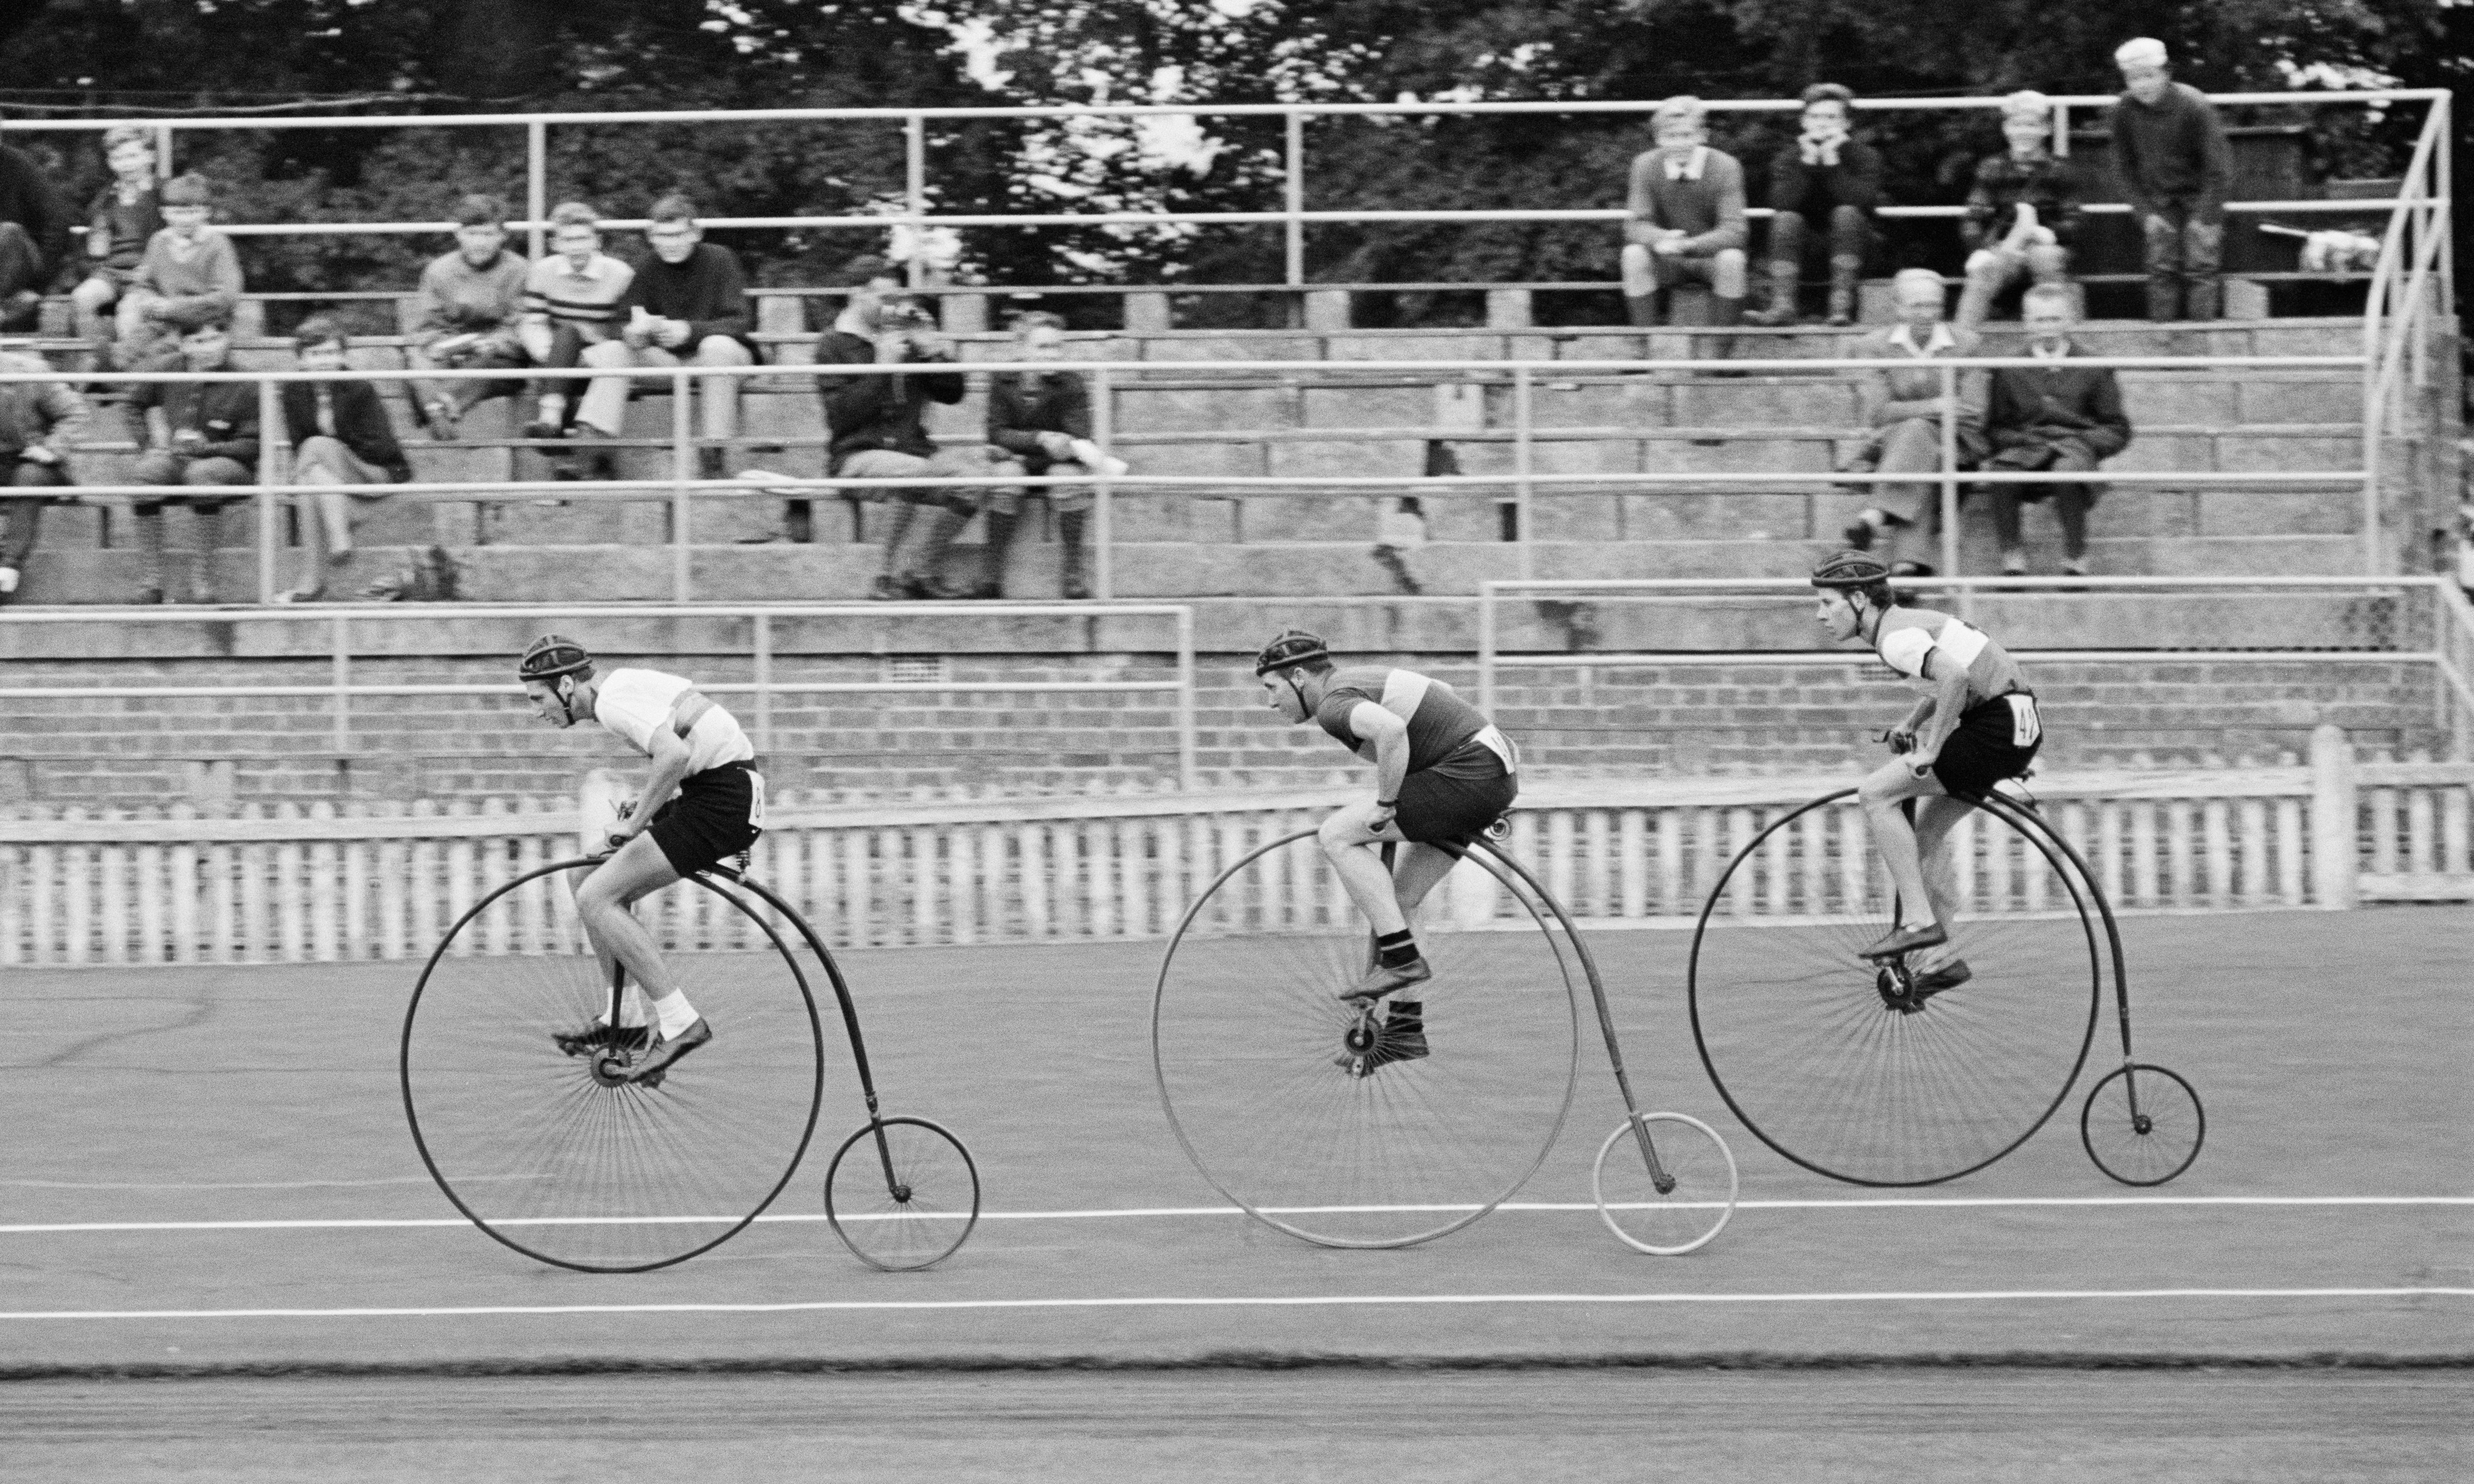 Buy a classic sport photograph: penny farthing racing